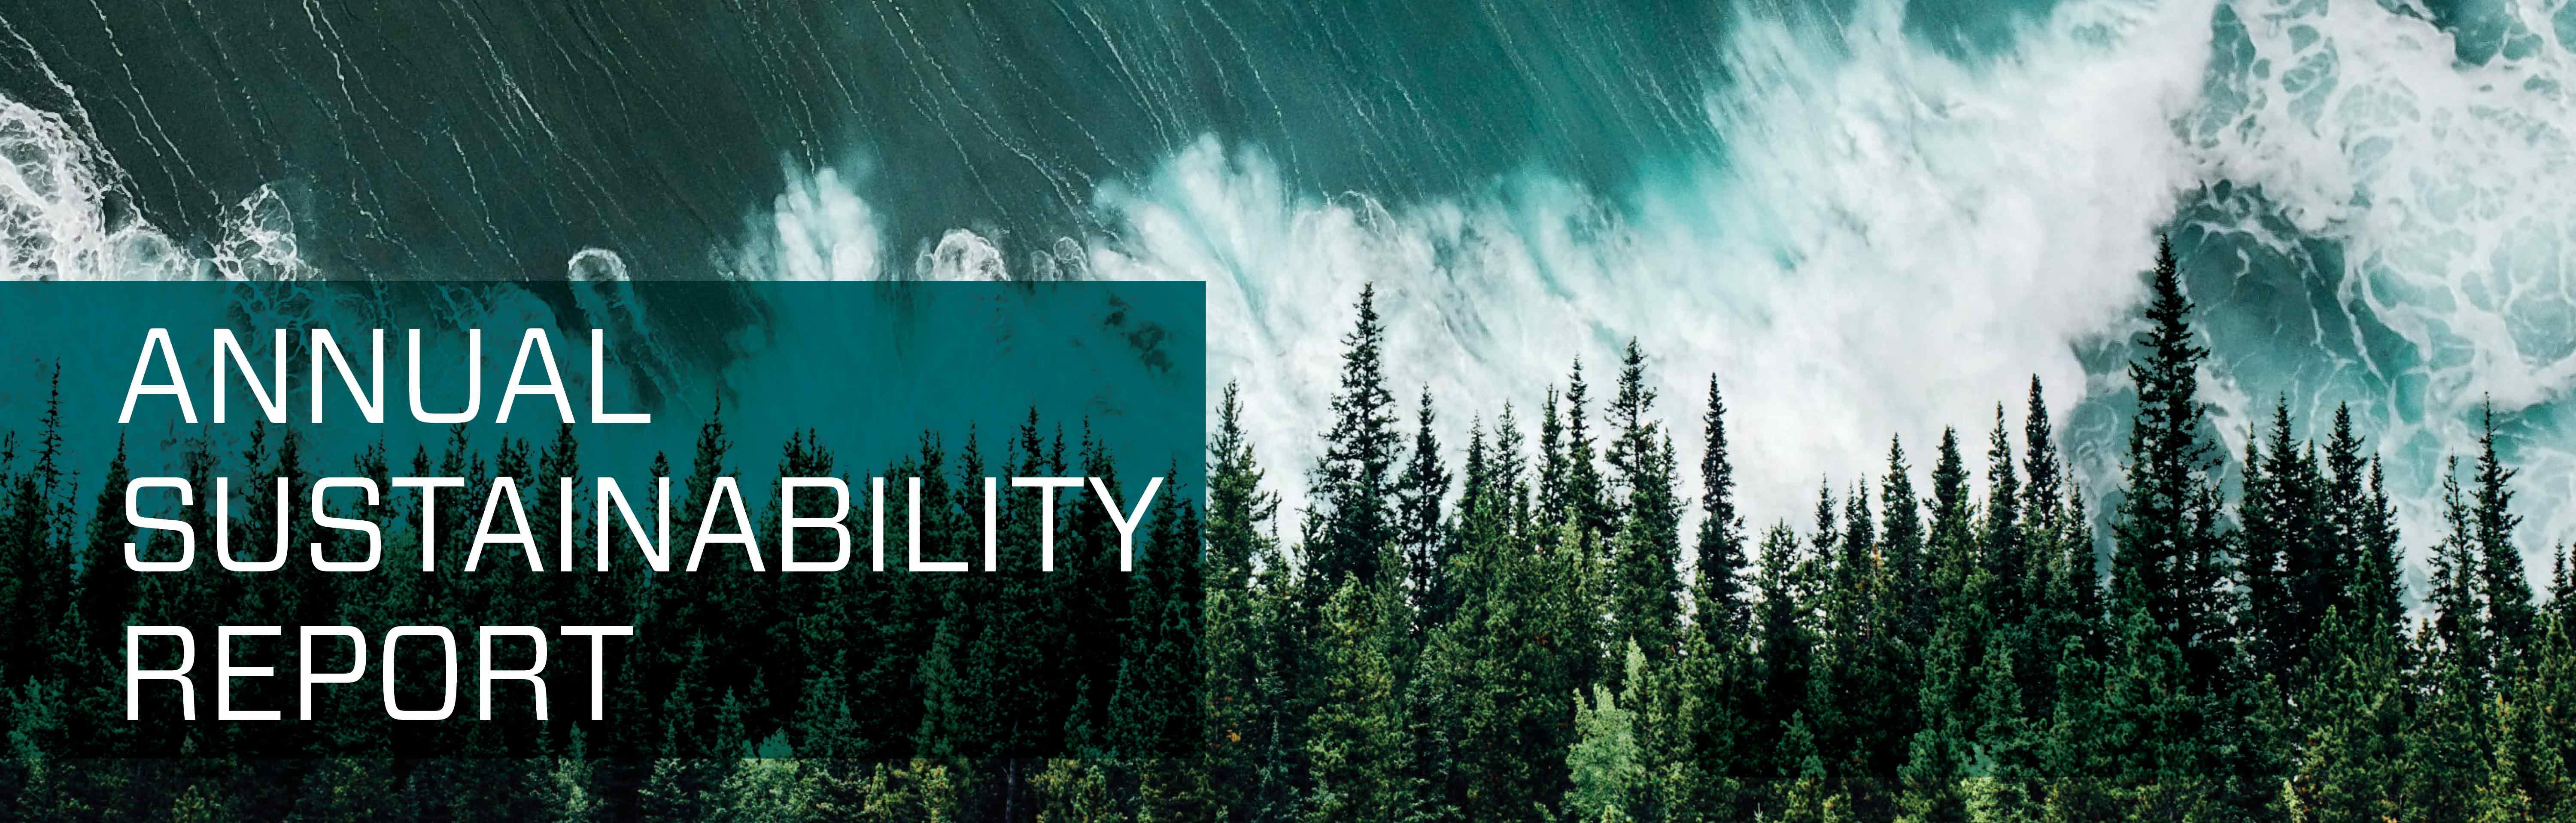 Sealed Air's Annual Sustainabilty Report